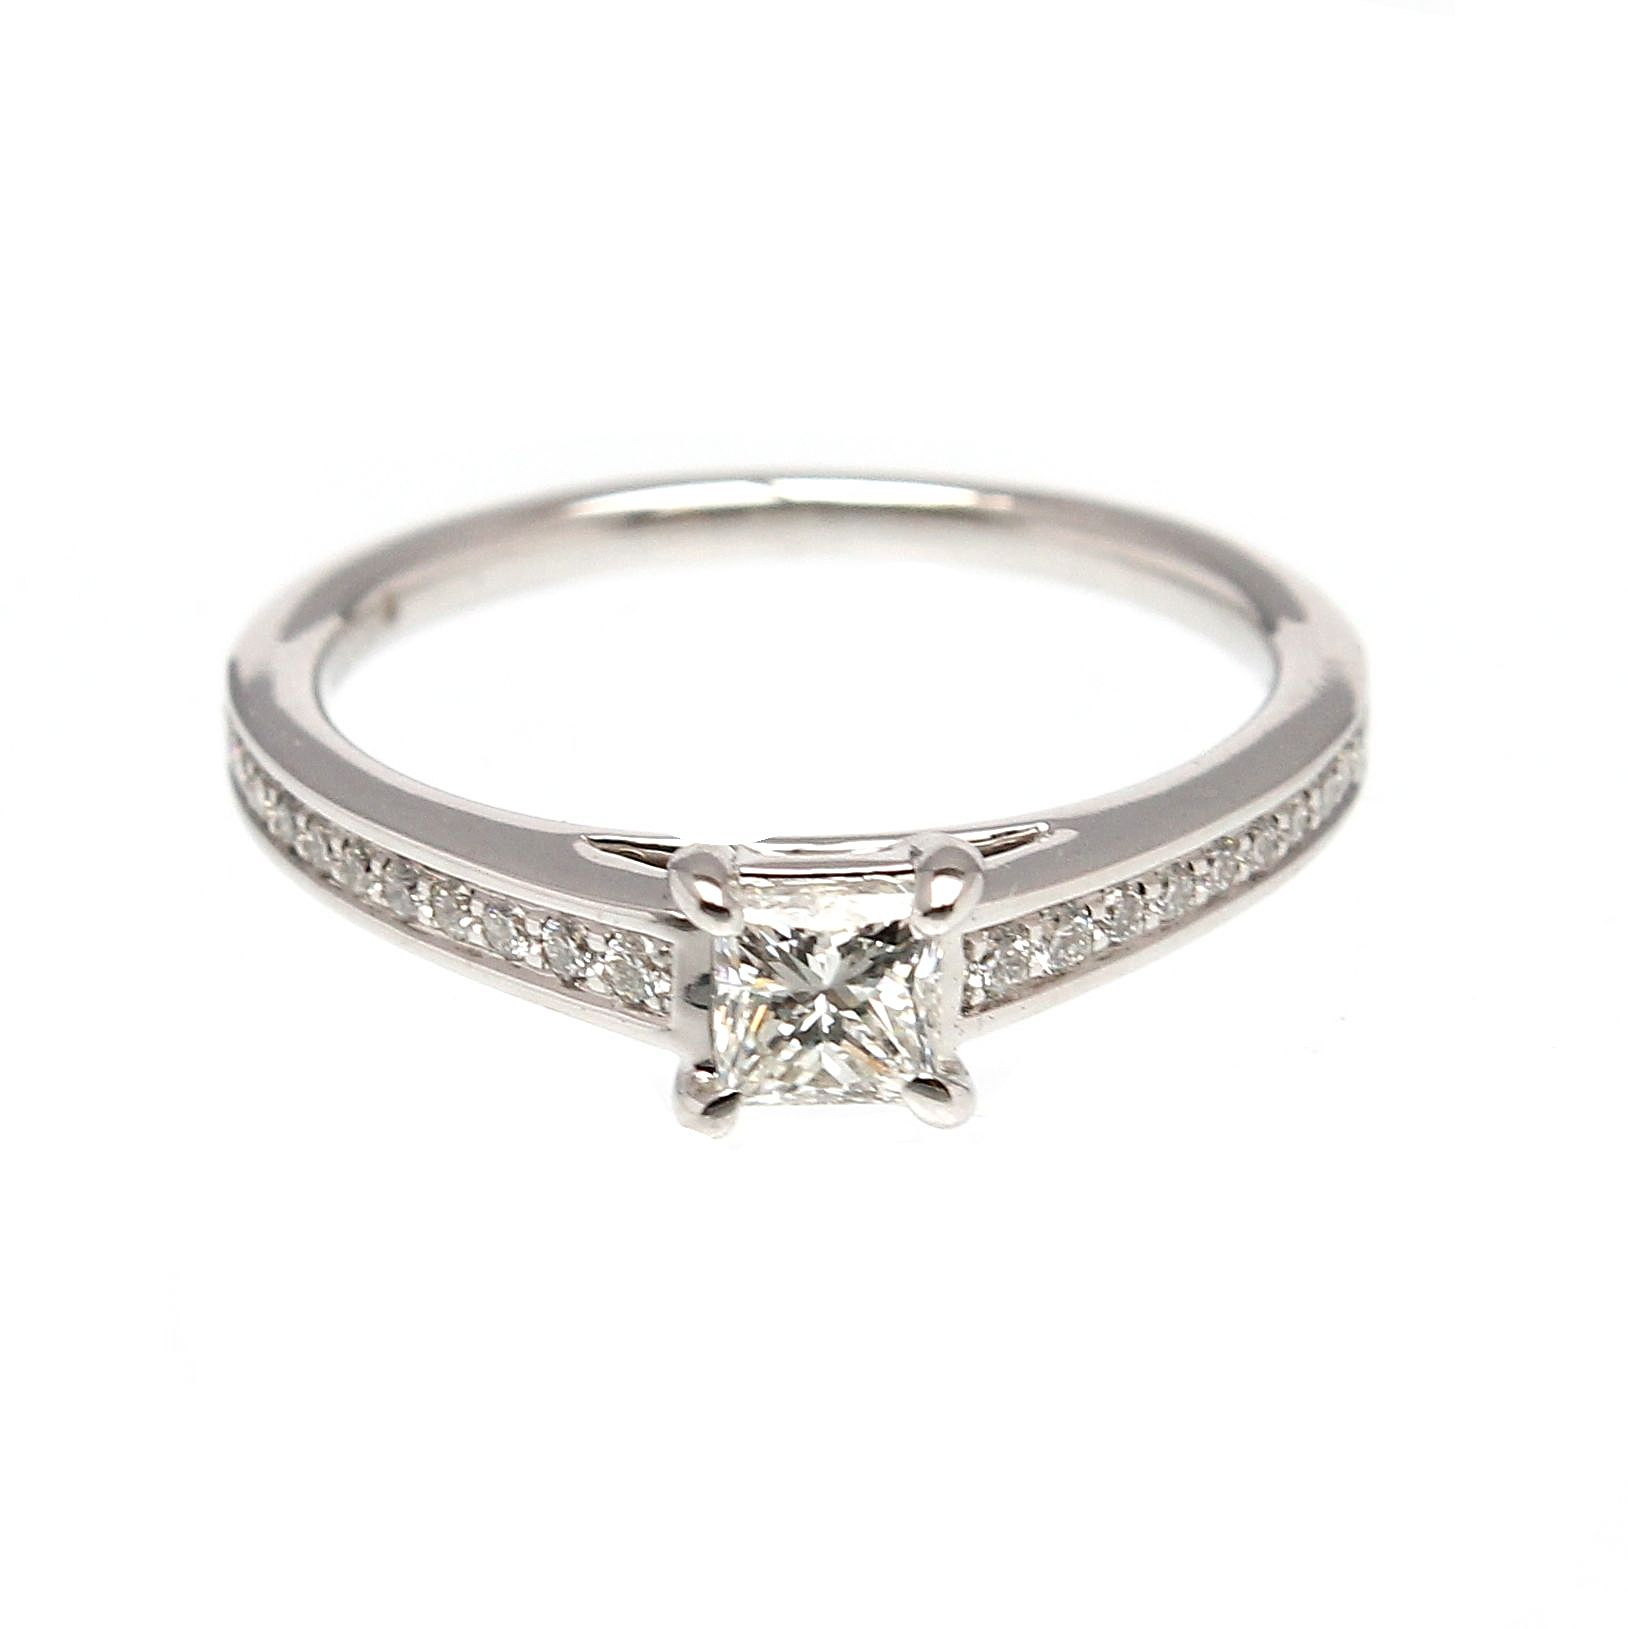 18Ct White Gold Princess Cut Diamond Ring With Diamond Shoulders With Recent Princess Wishbone Rings (View 3 of 25)